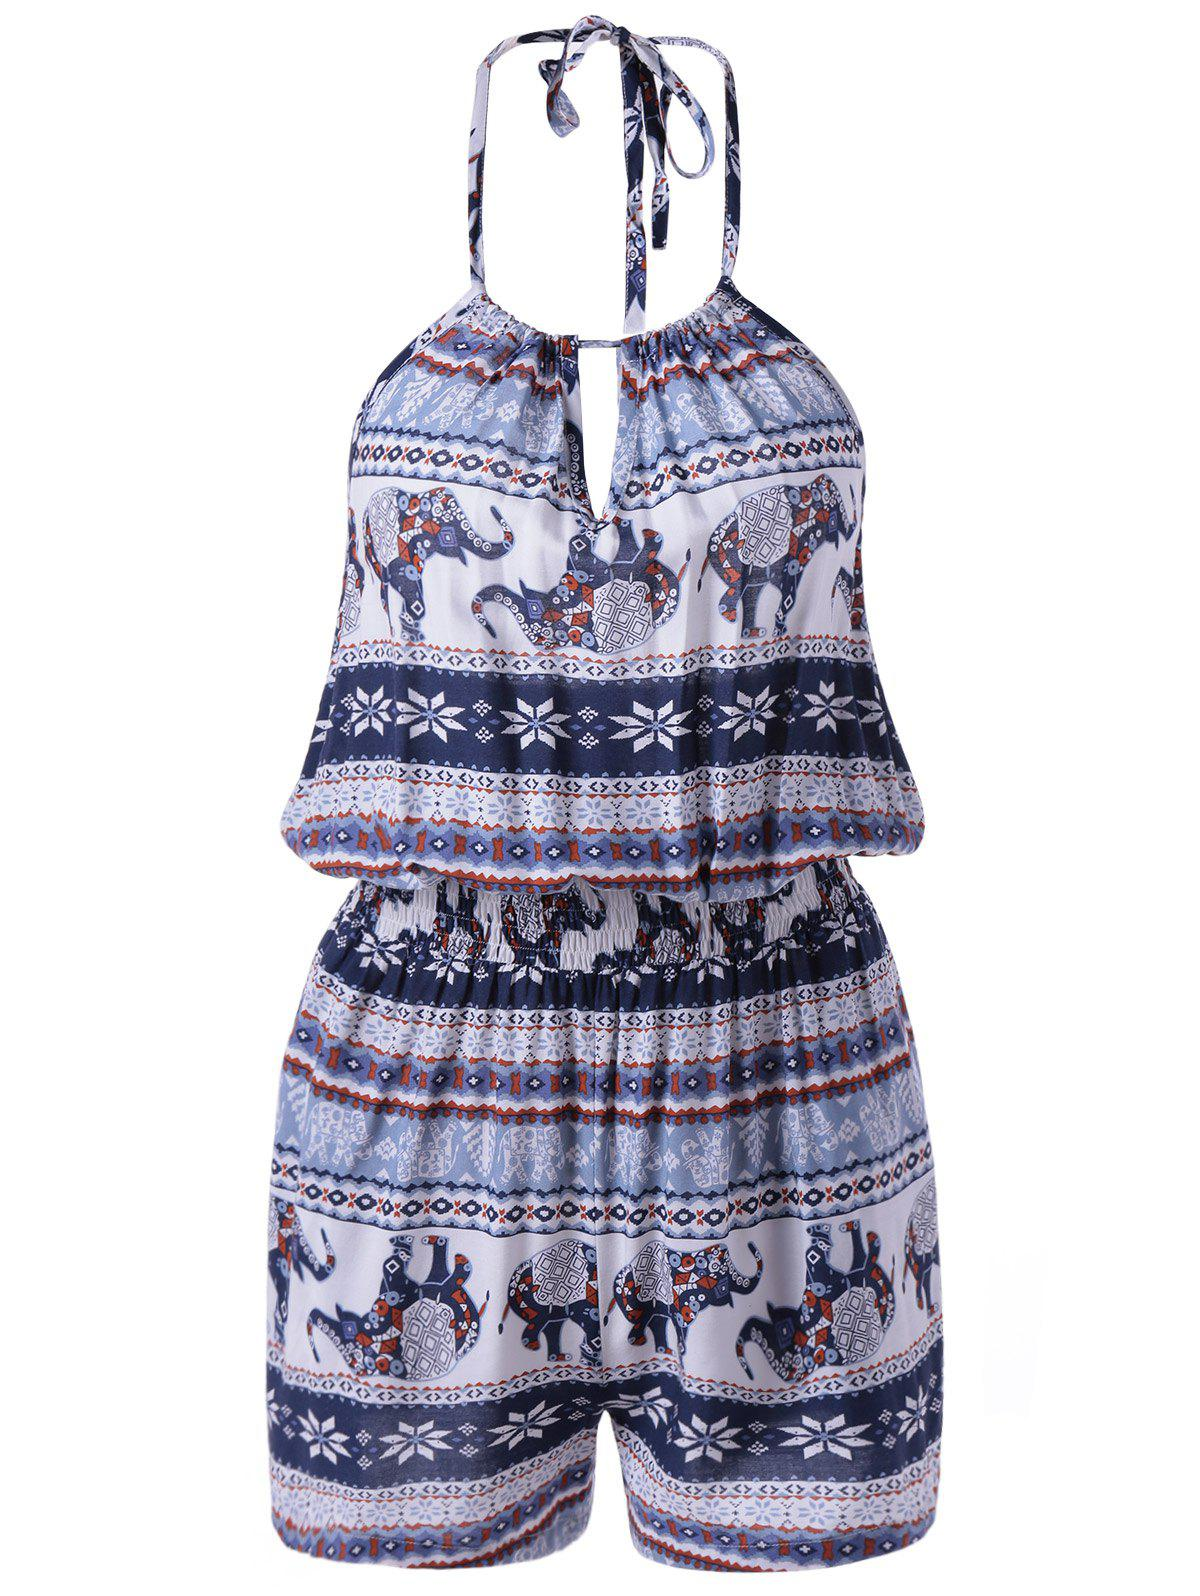 Simple Style Women's National Design Spaghetti Strap Print Romper - COLORMIX XL